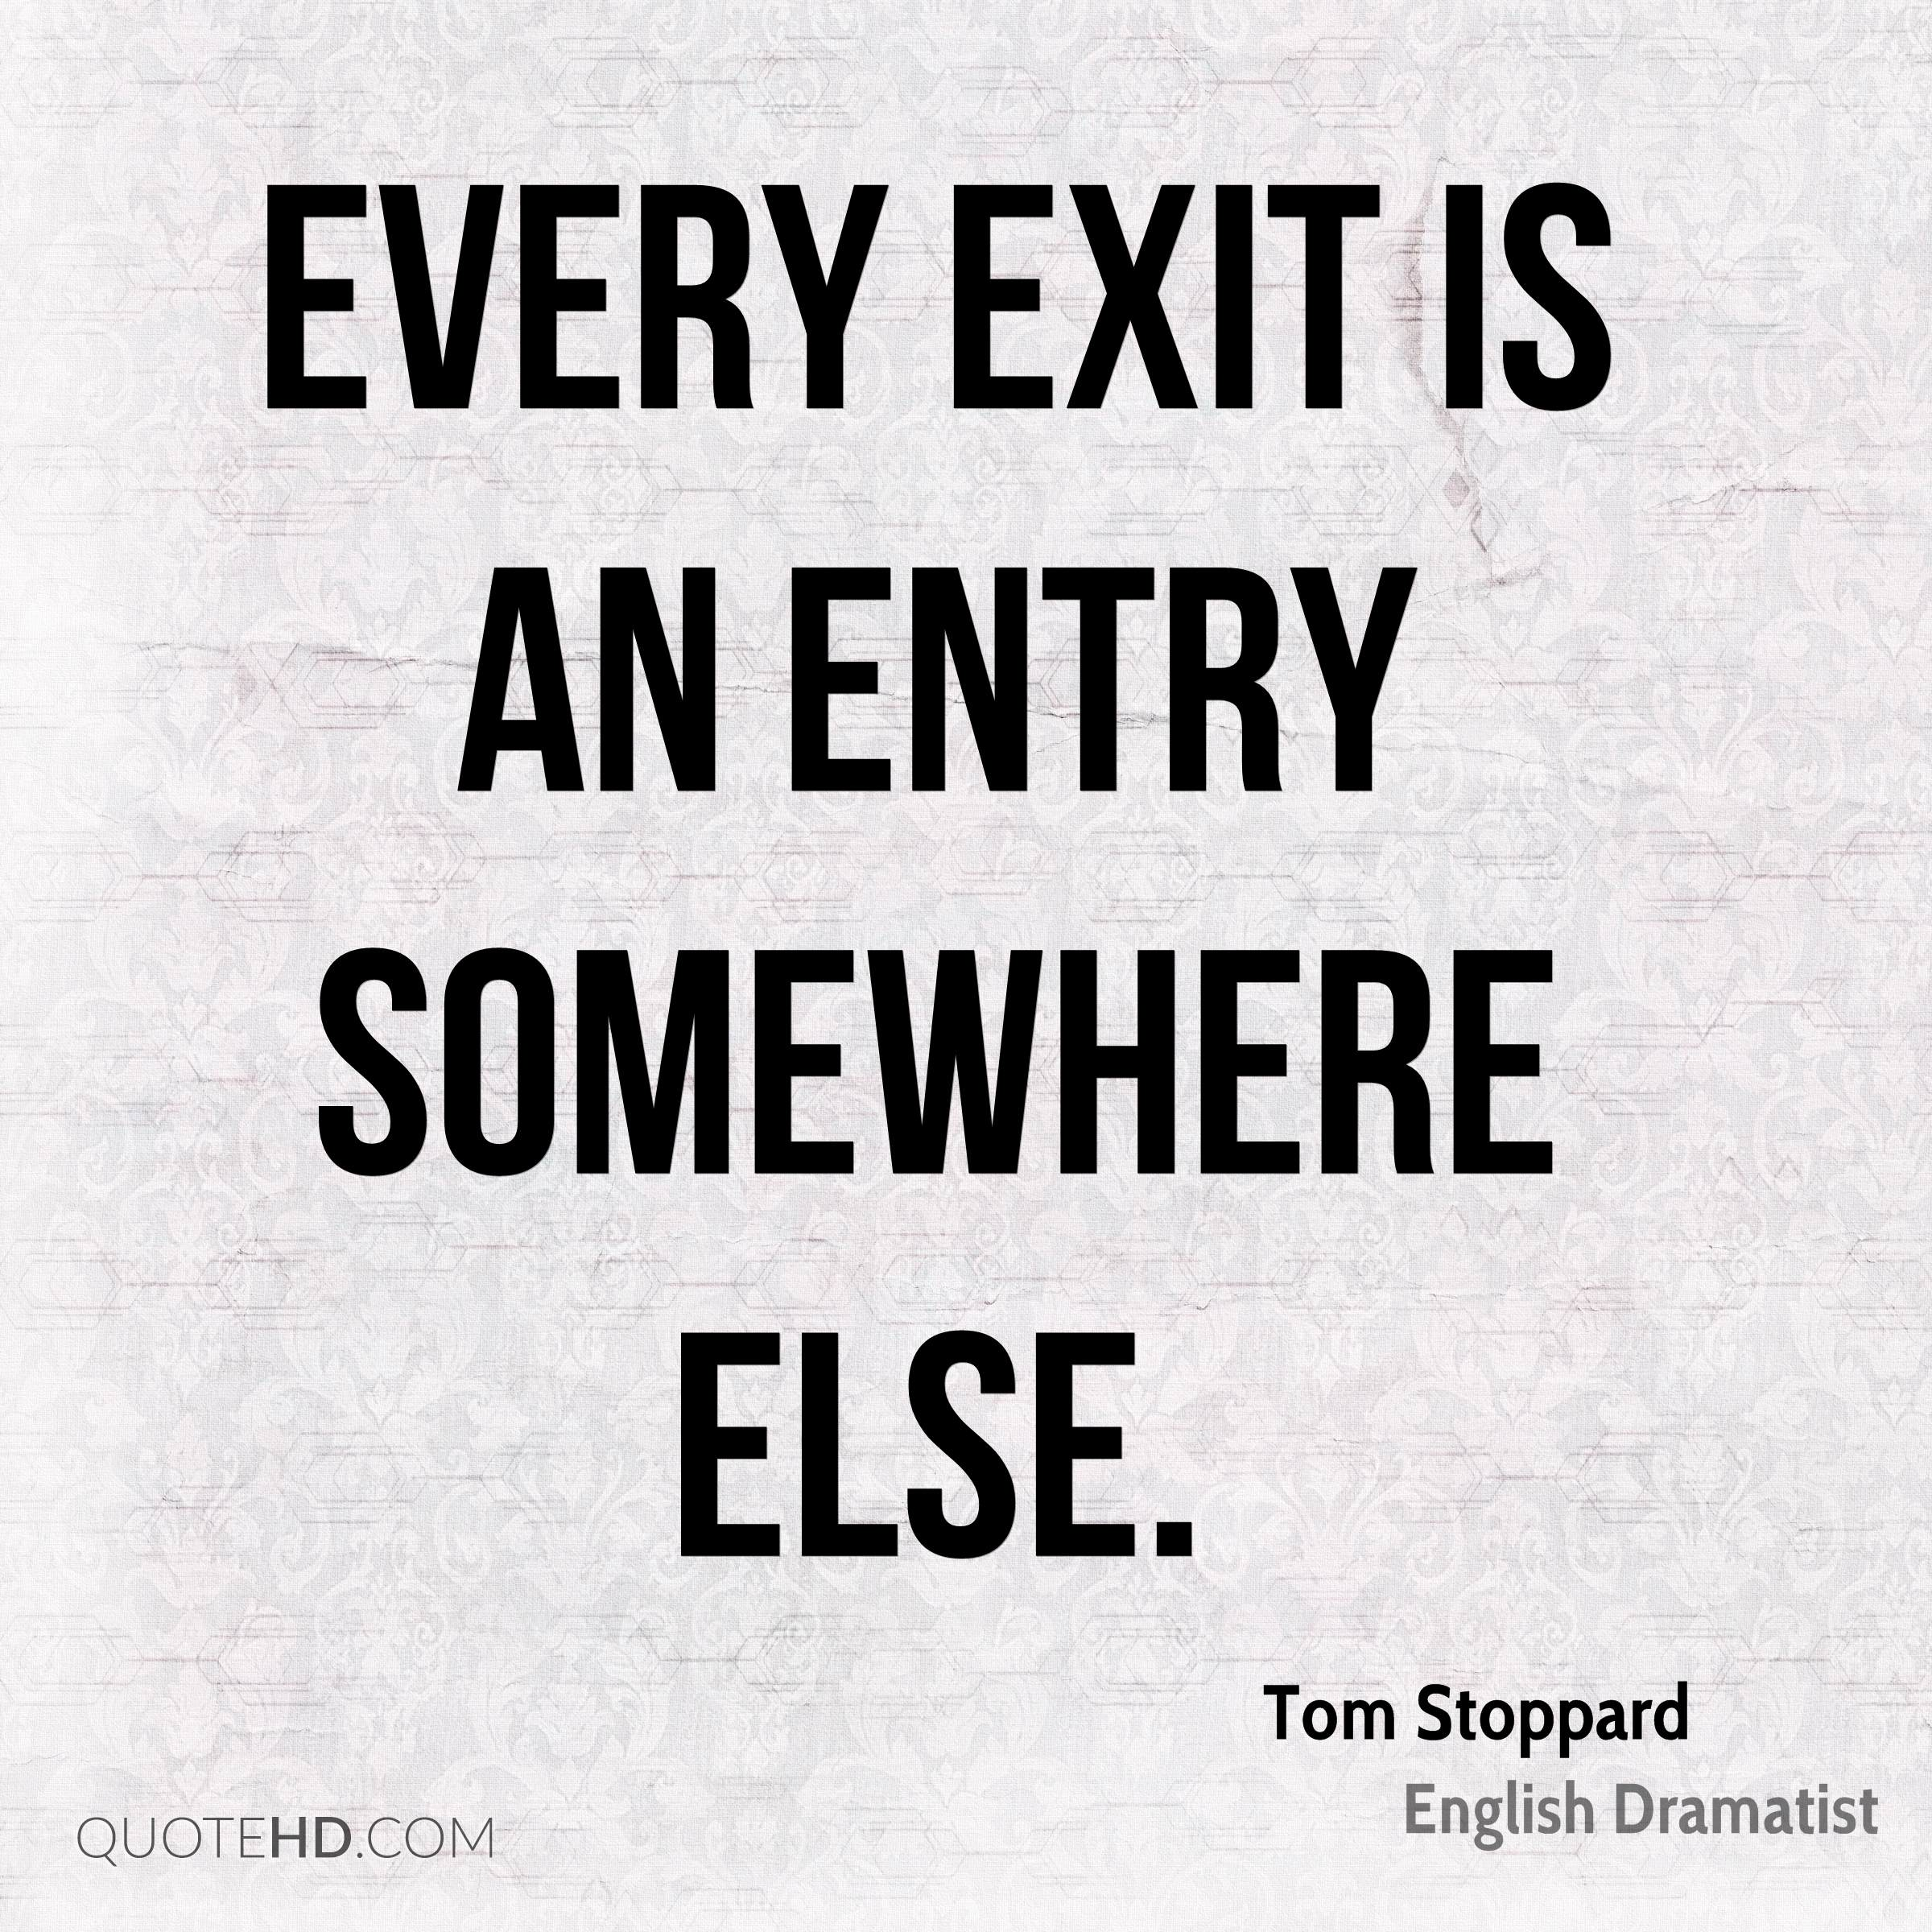 Every exit is an entry somewhere else.